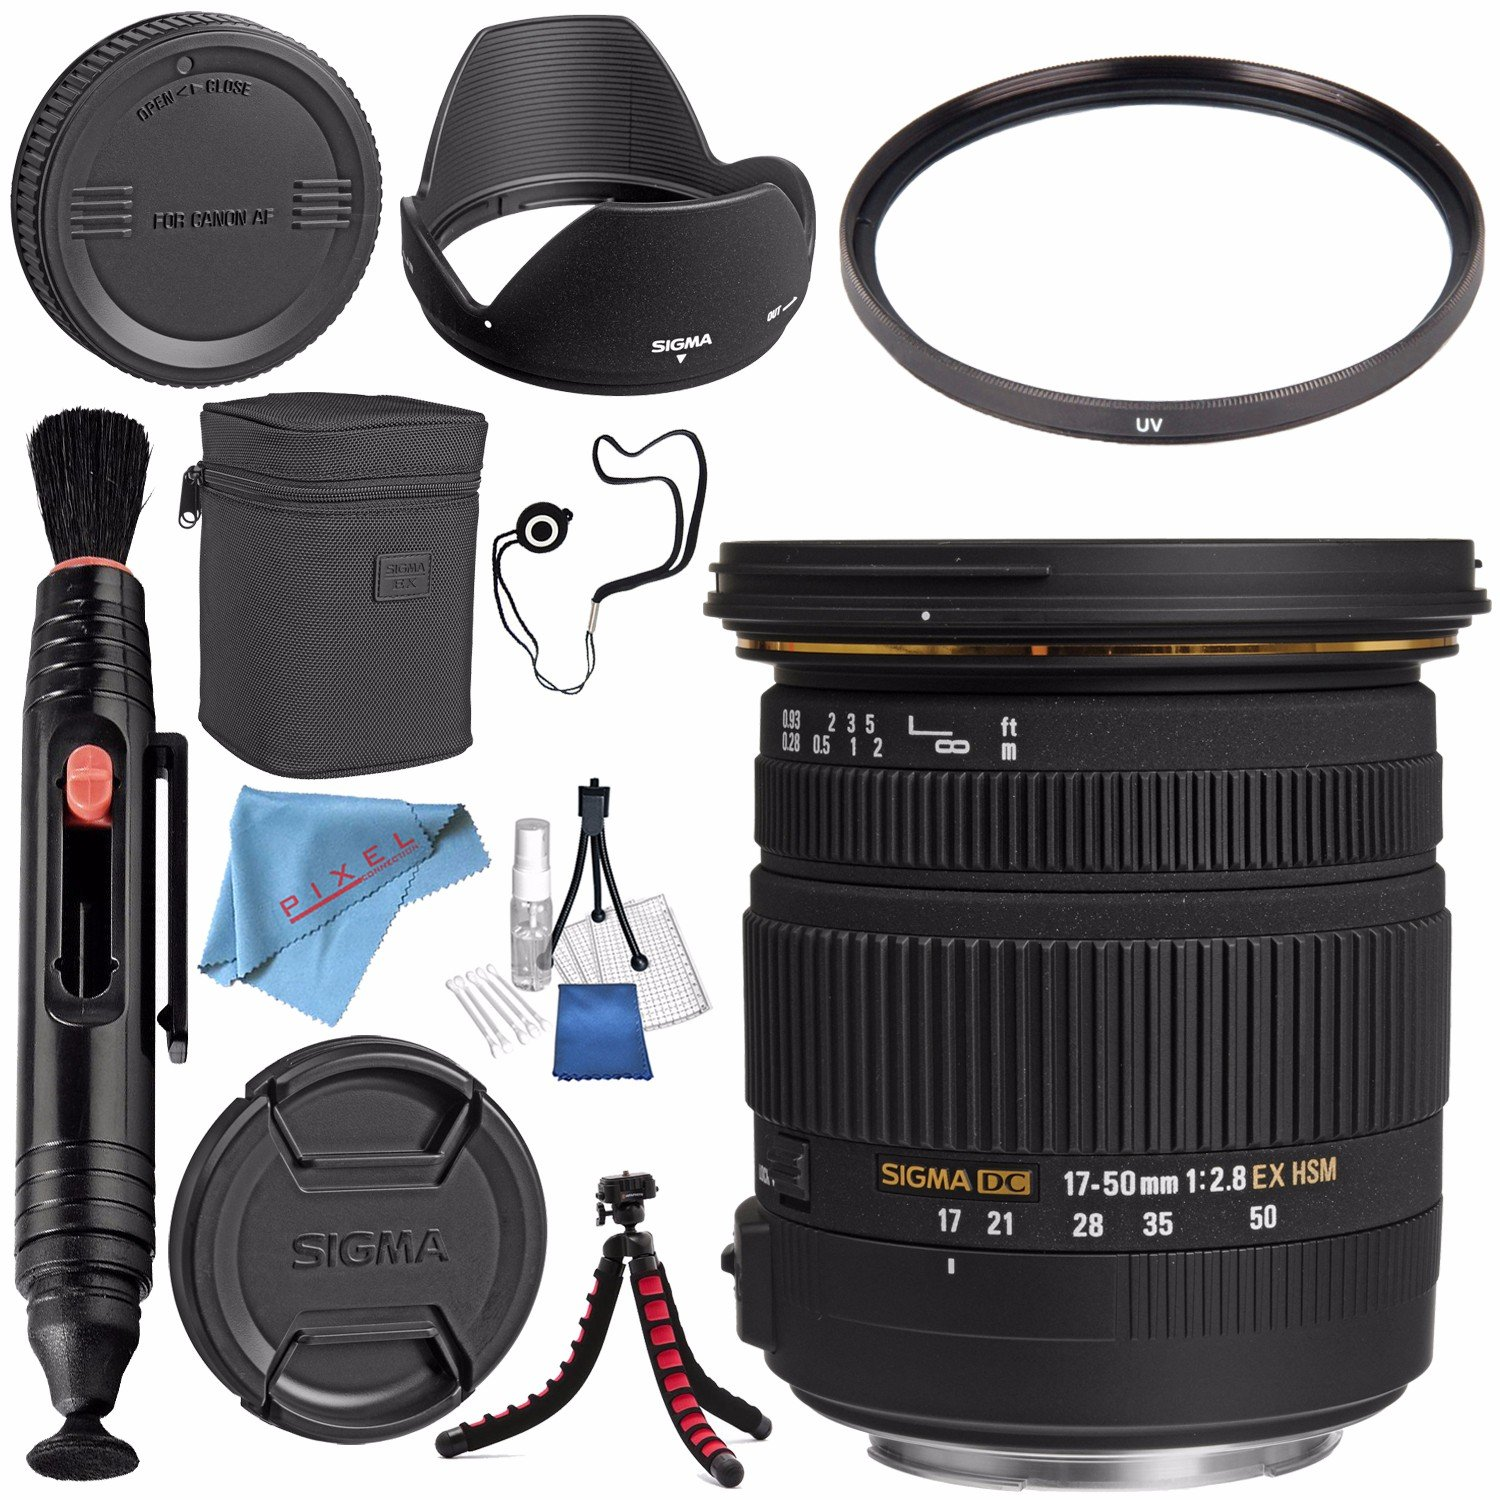 Sigma 17-50mm f/2.8 EX DC OS HSM Zoom Lens For Canon w/ A{S-C Sensor #583101 + 77mm UV Filter + Lens Pen Cleaner + Fibercloth + Lens Capkeeper + Deluxe Cleaning Kit + Flexible Tripod Bundle